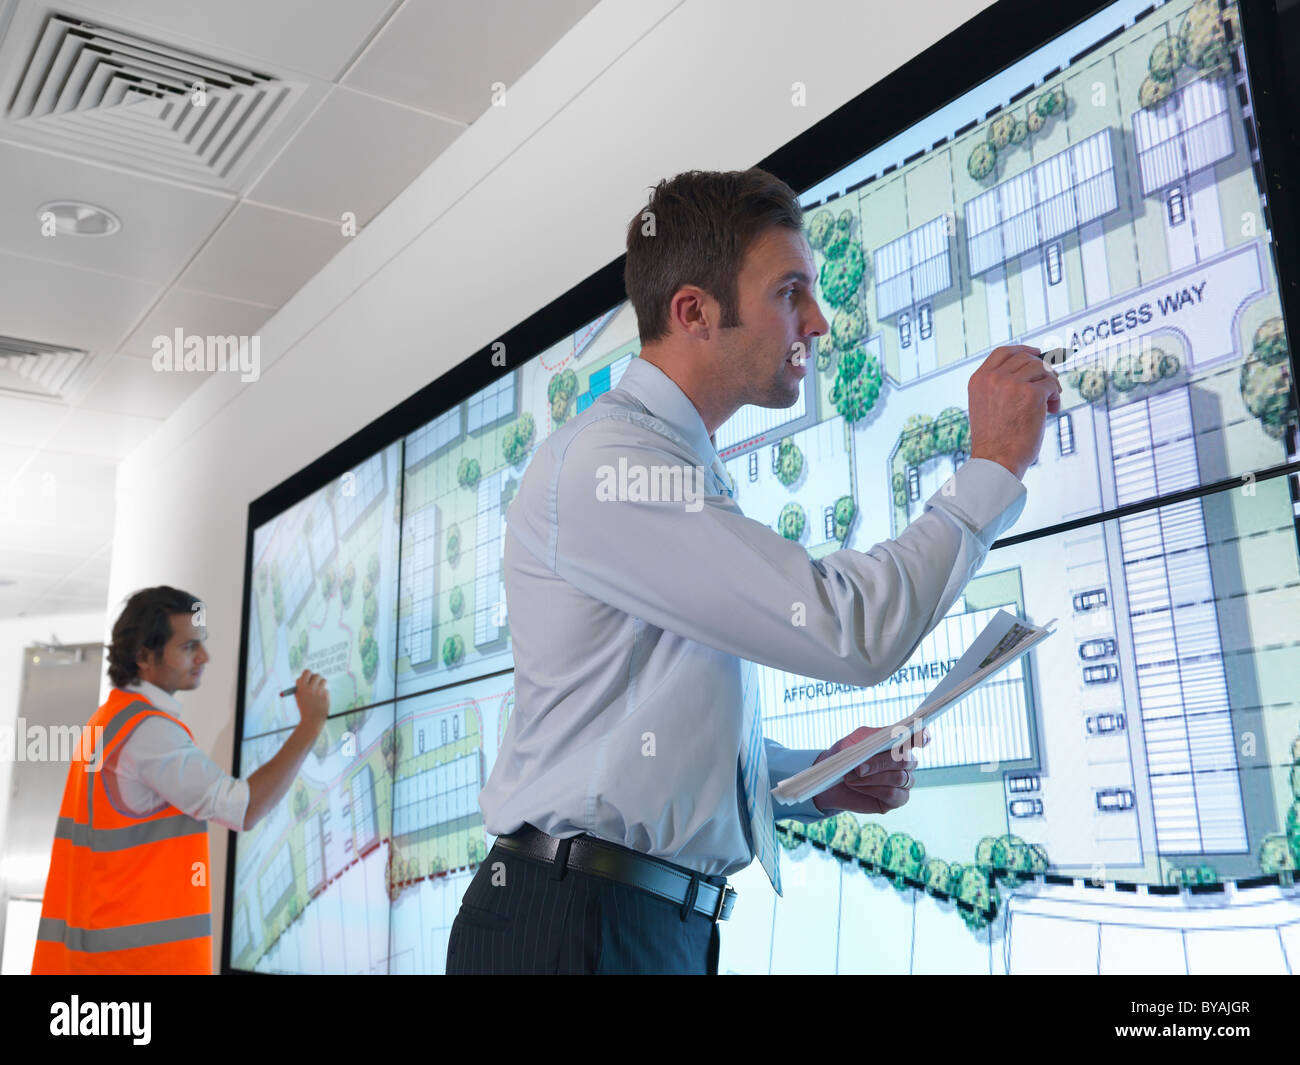 Town planners with plans on screen - Stock Image